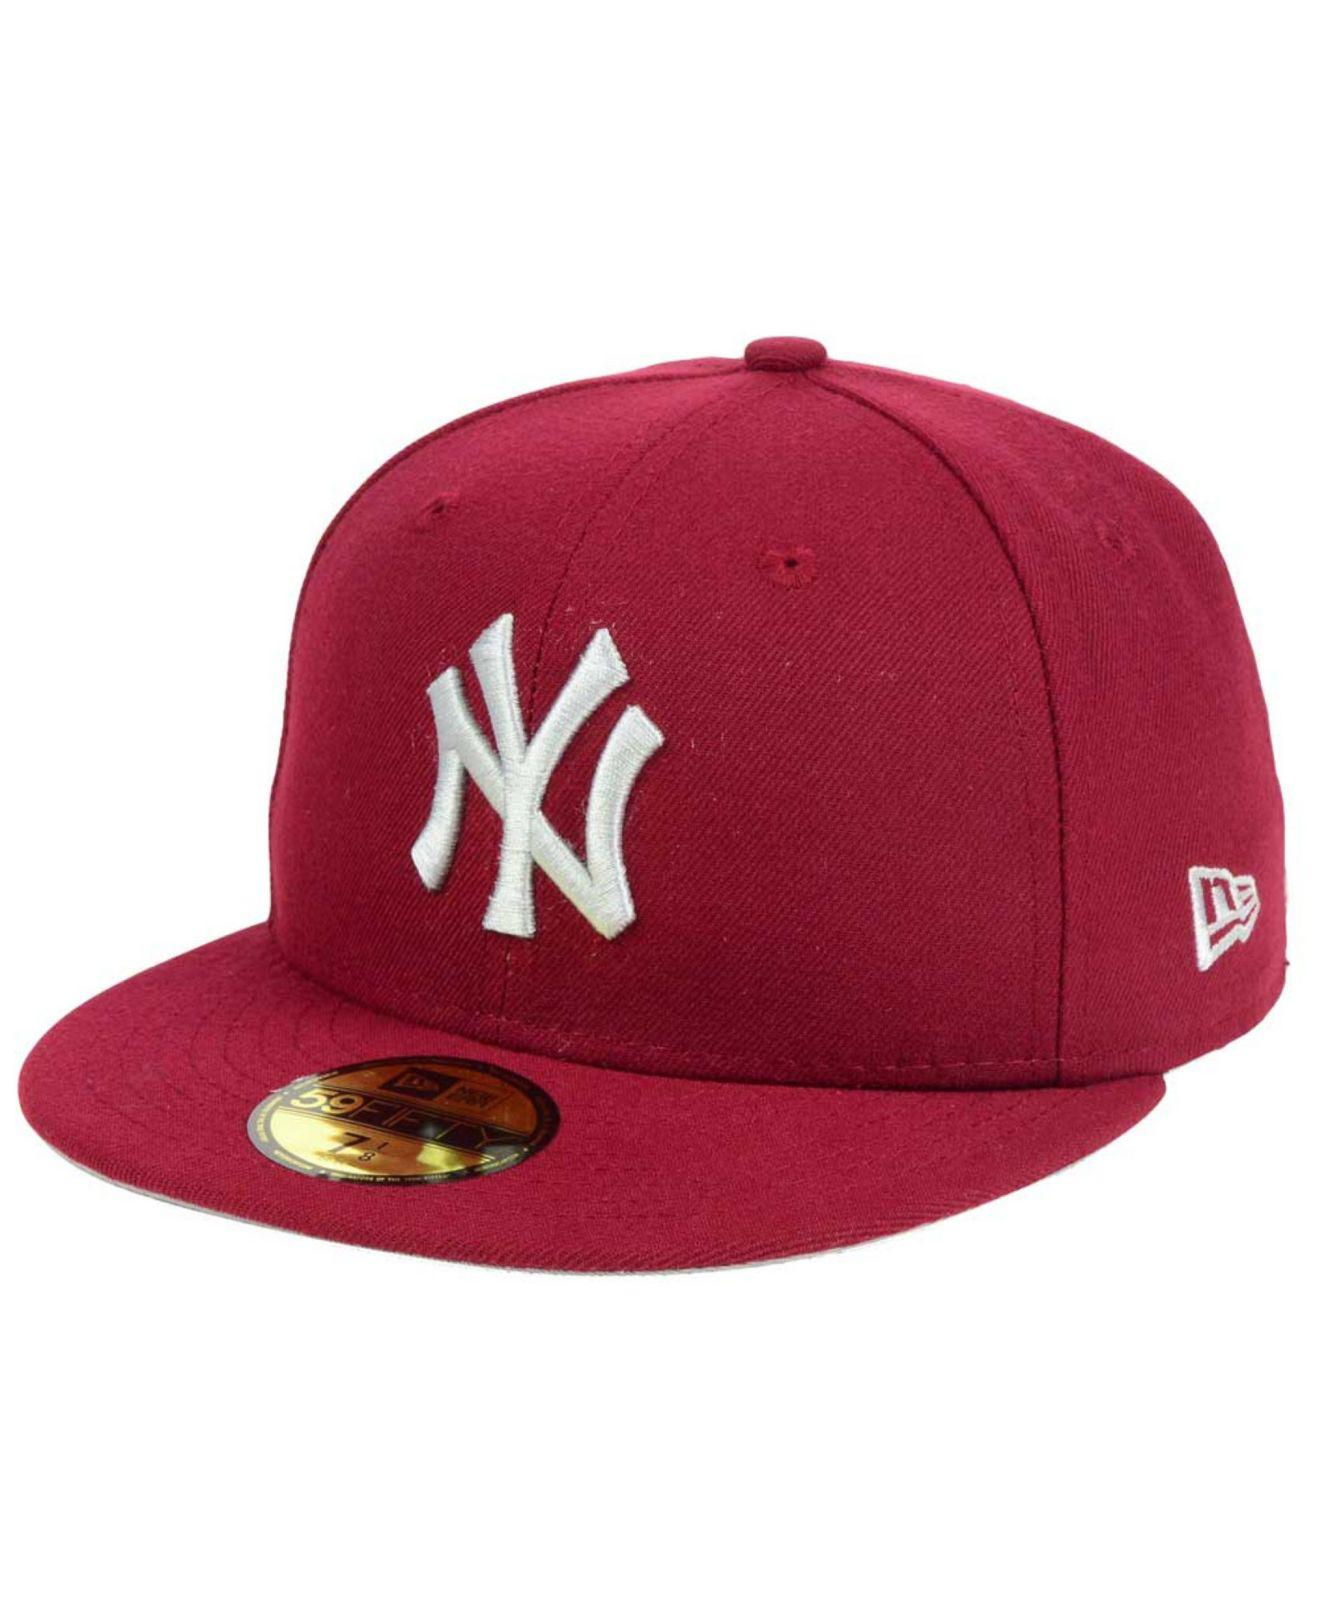 Lyst - Ktz Cardinal Gray 59fifty Cap in Red for Men a6c84d5911ea